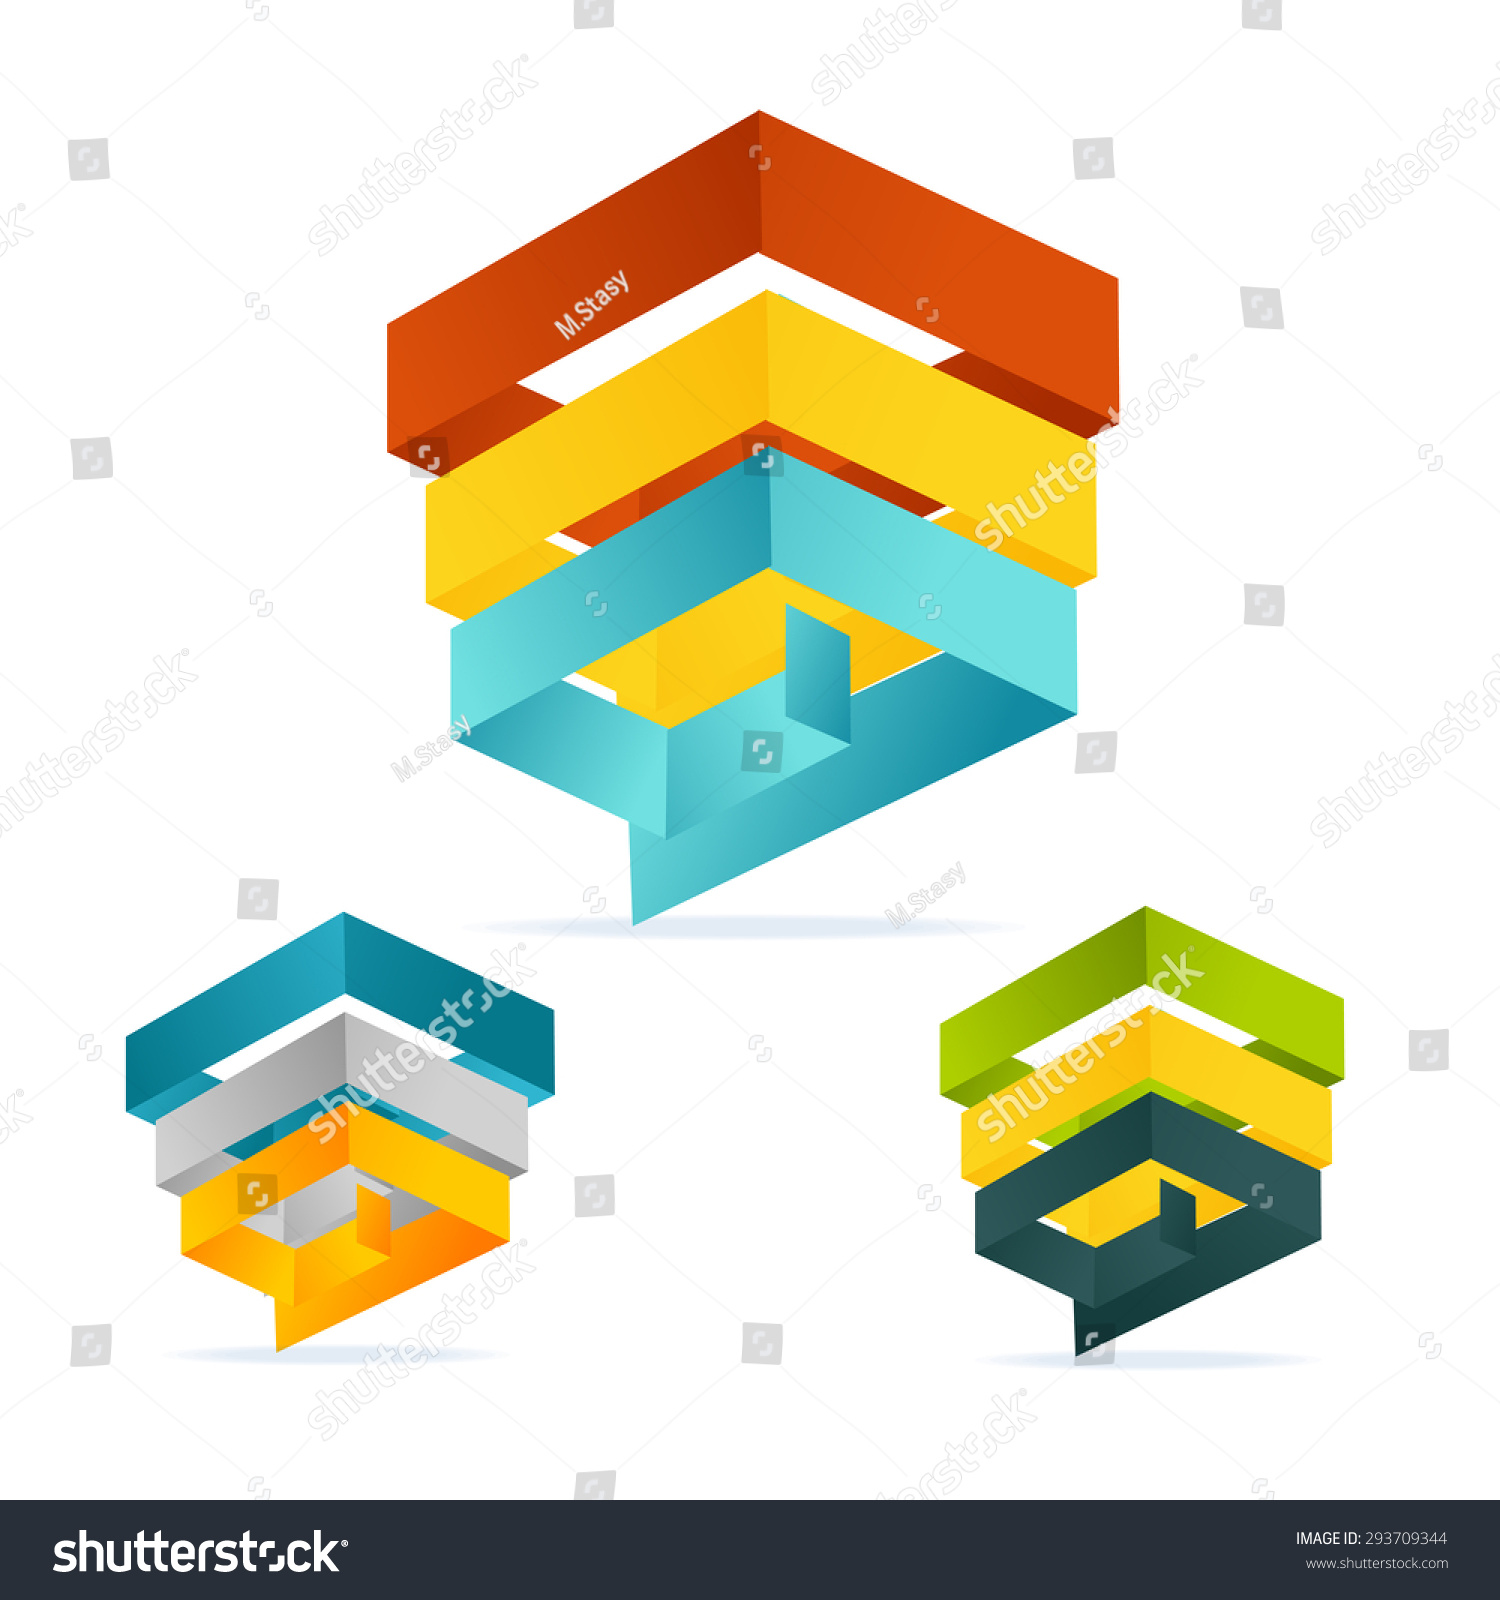 Vector Illustration Pyramid Chart Isometric Templates Stock Vector ...